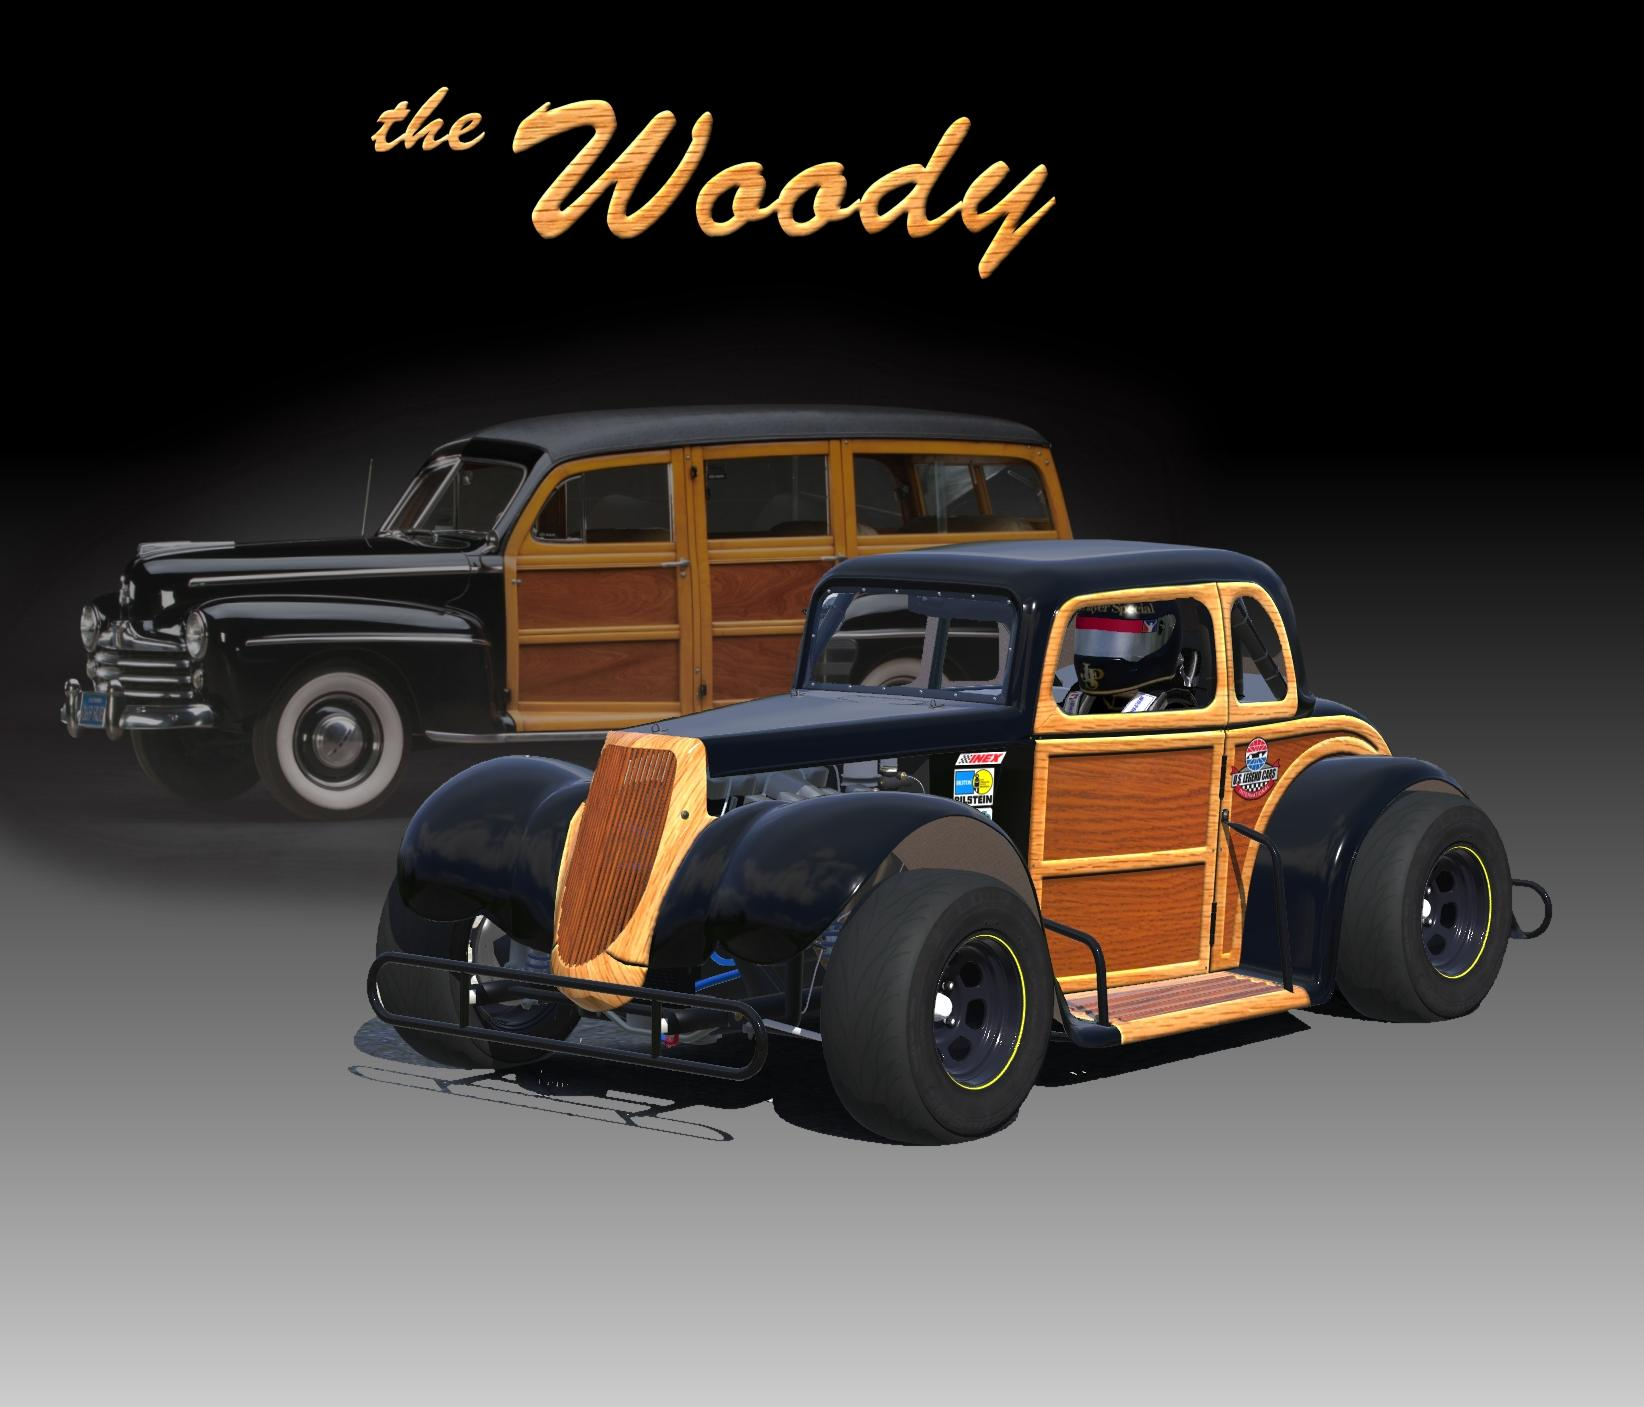 Preview of Legends woody by Don Craig